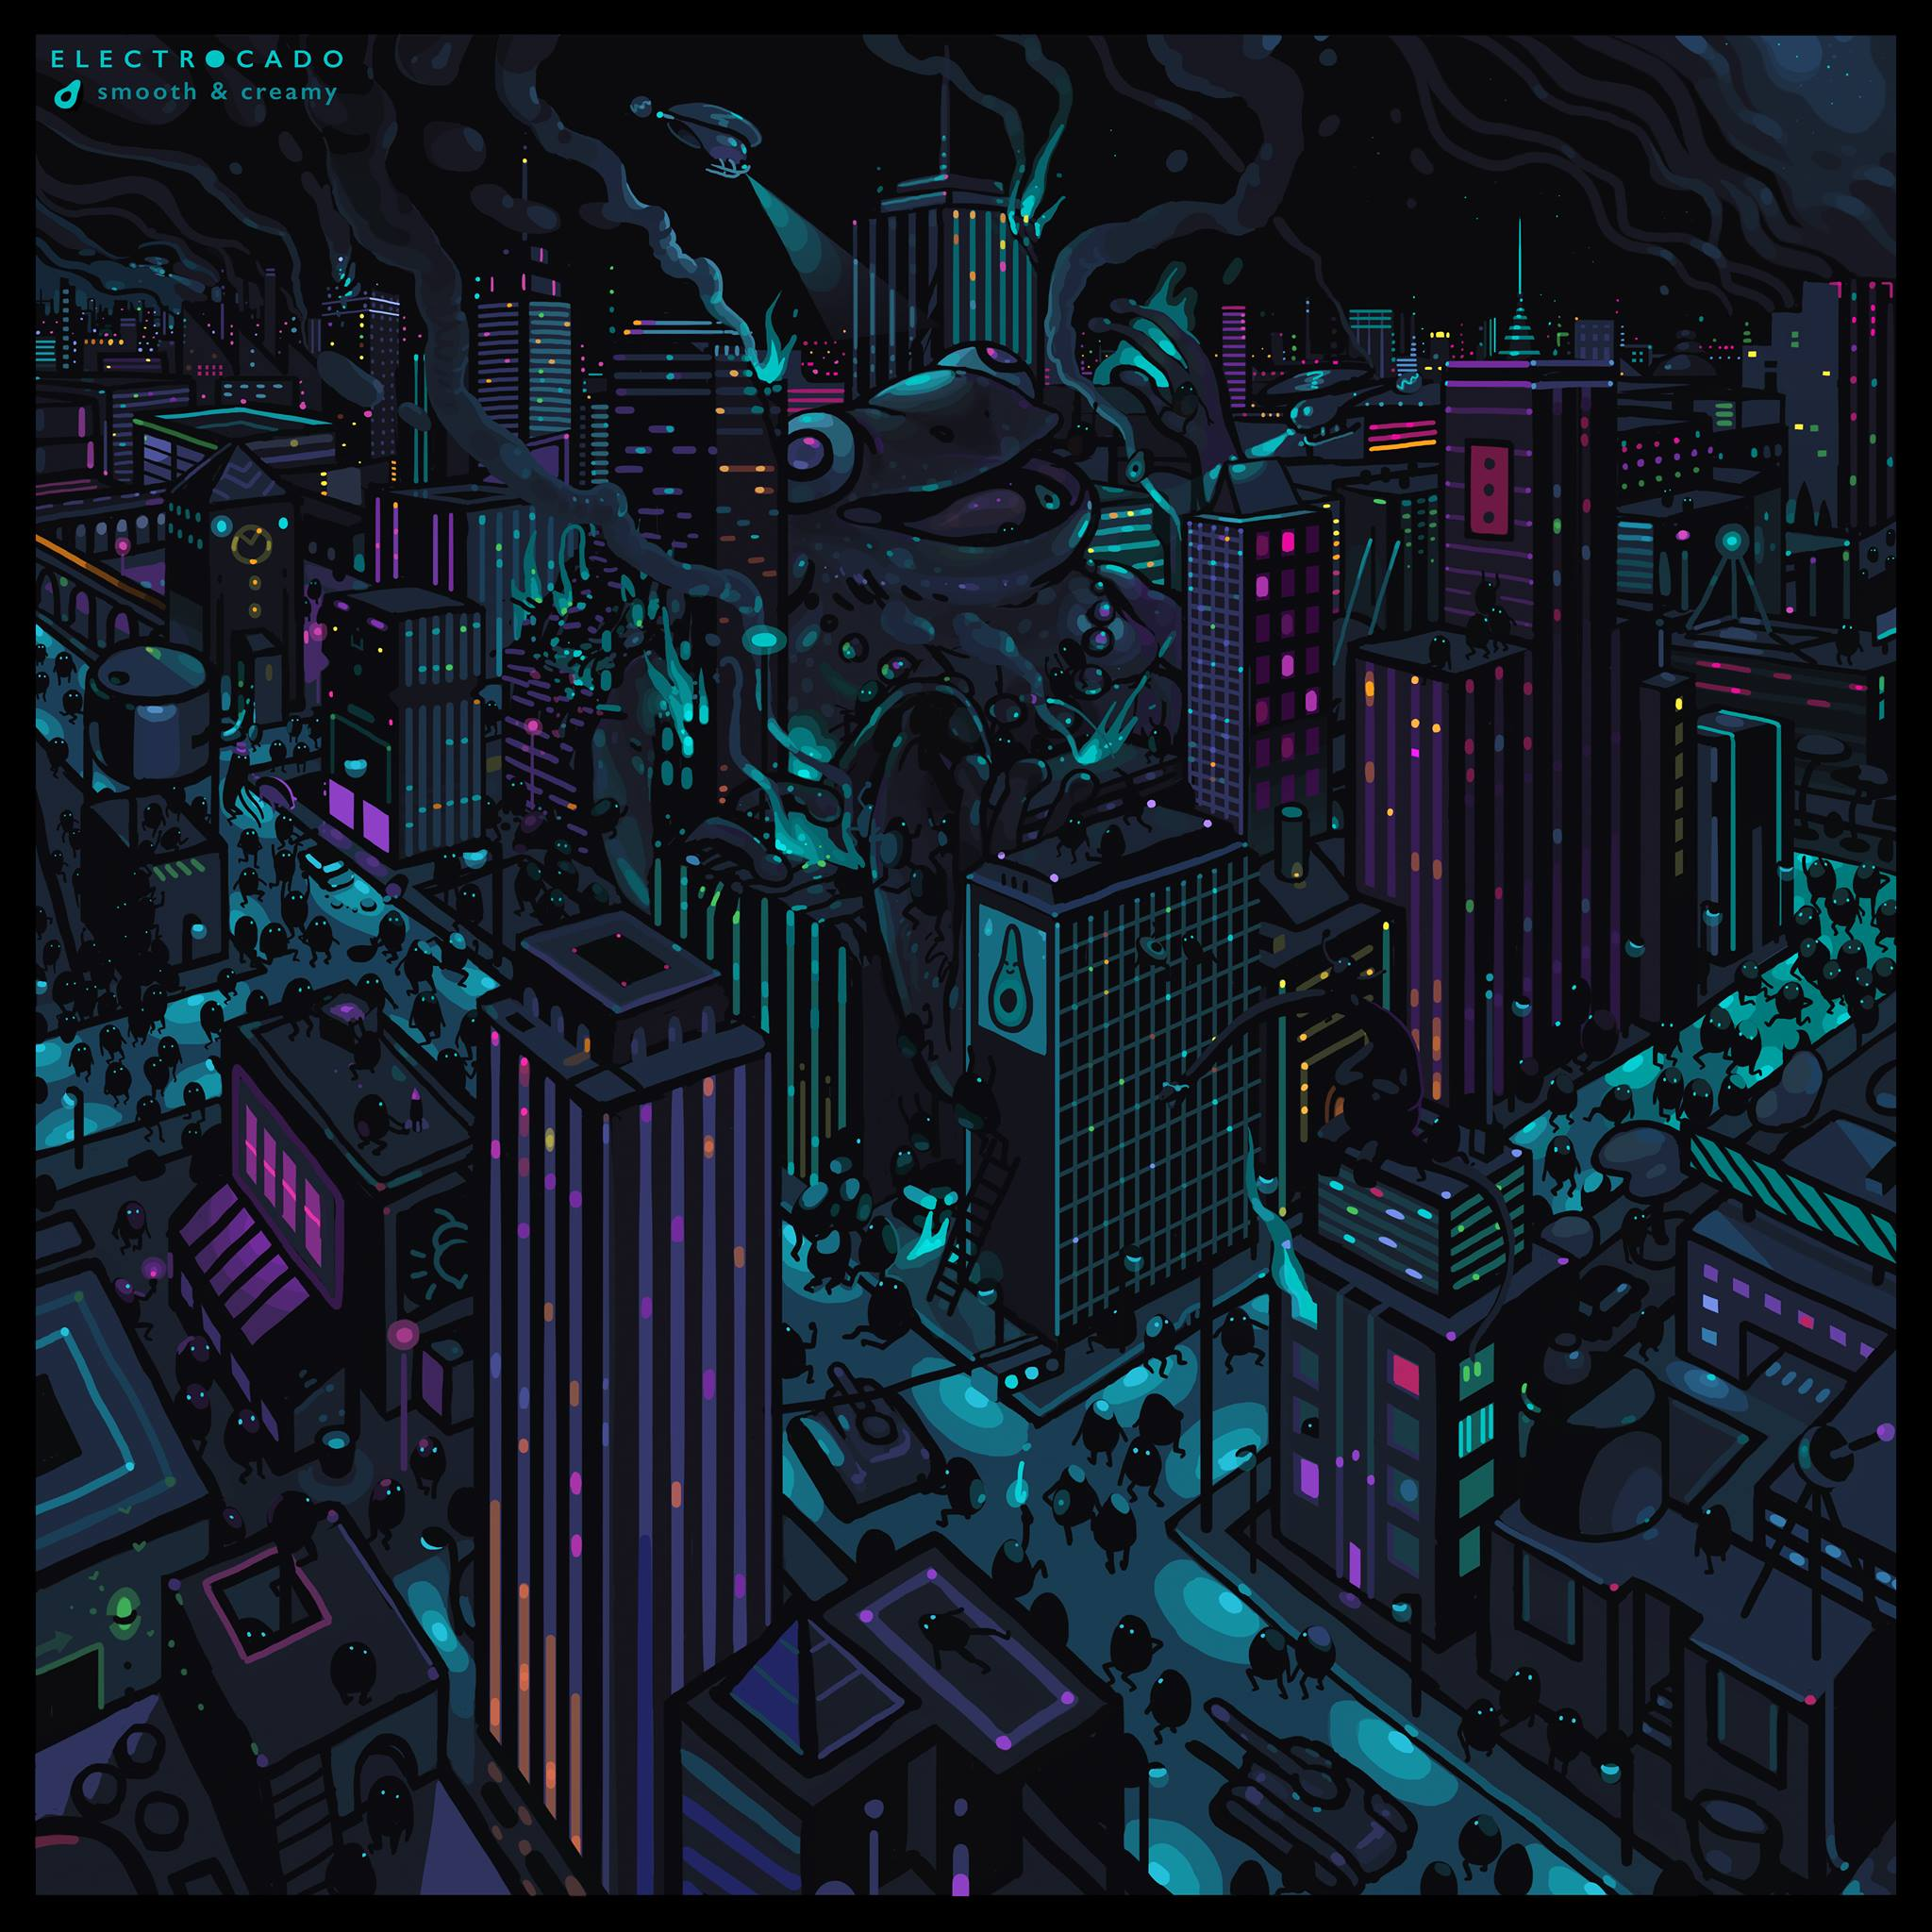 """Electrocado's """"Smooth & Creamy"""" Mau5trap EP Takes House Amalgams To Unforeseen Heights"""